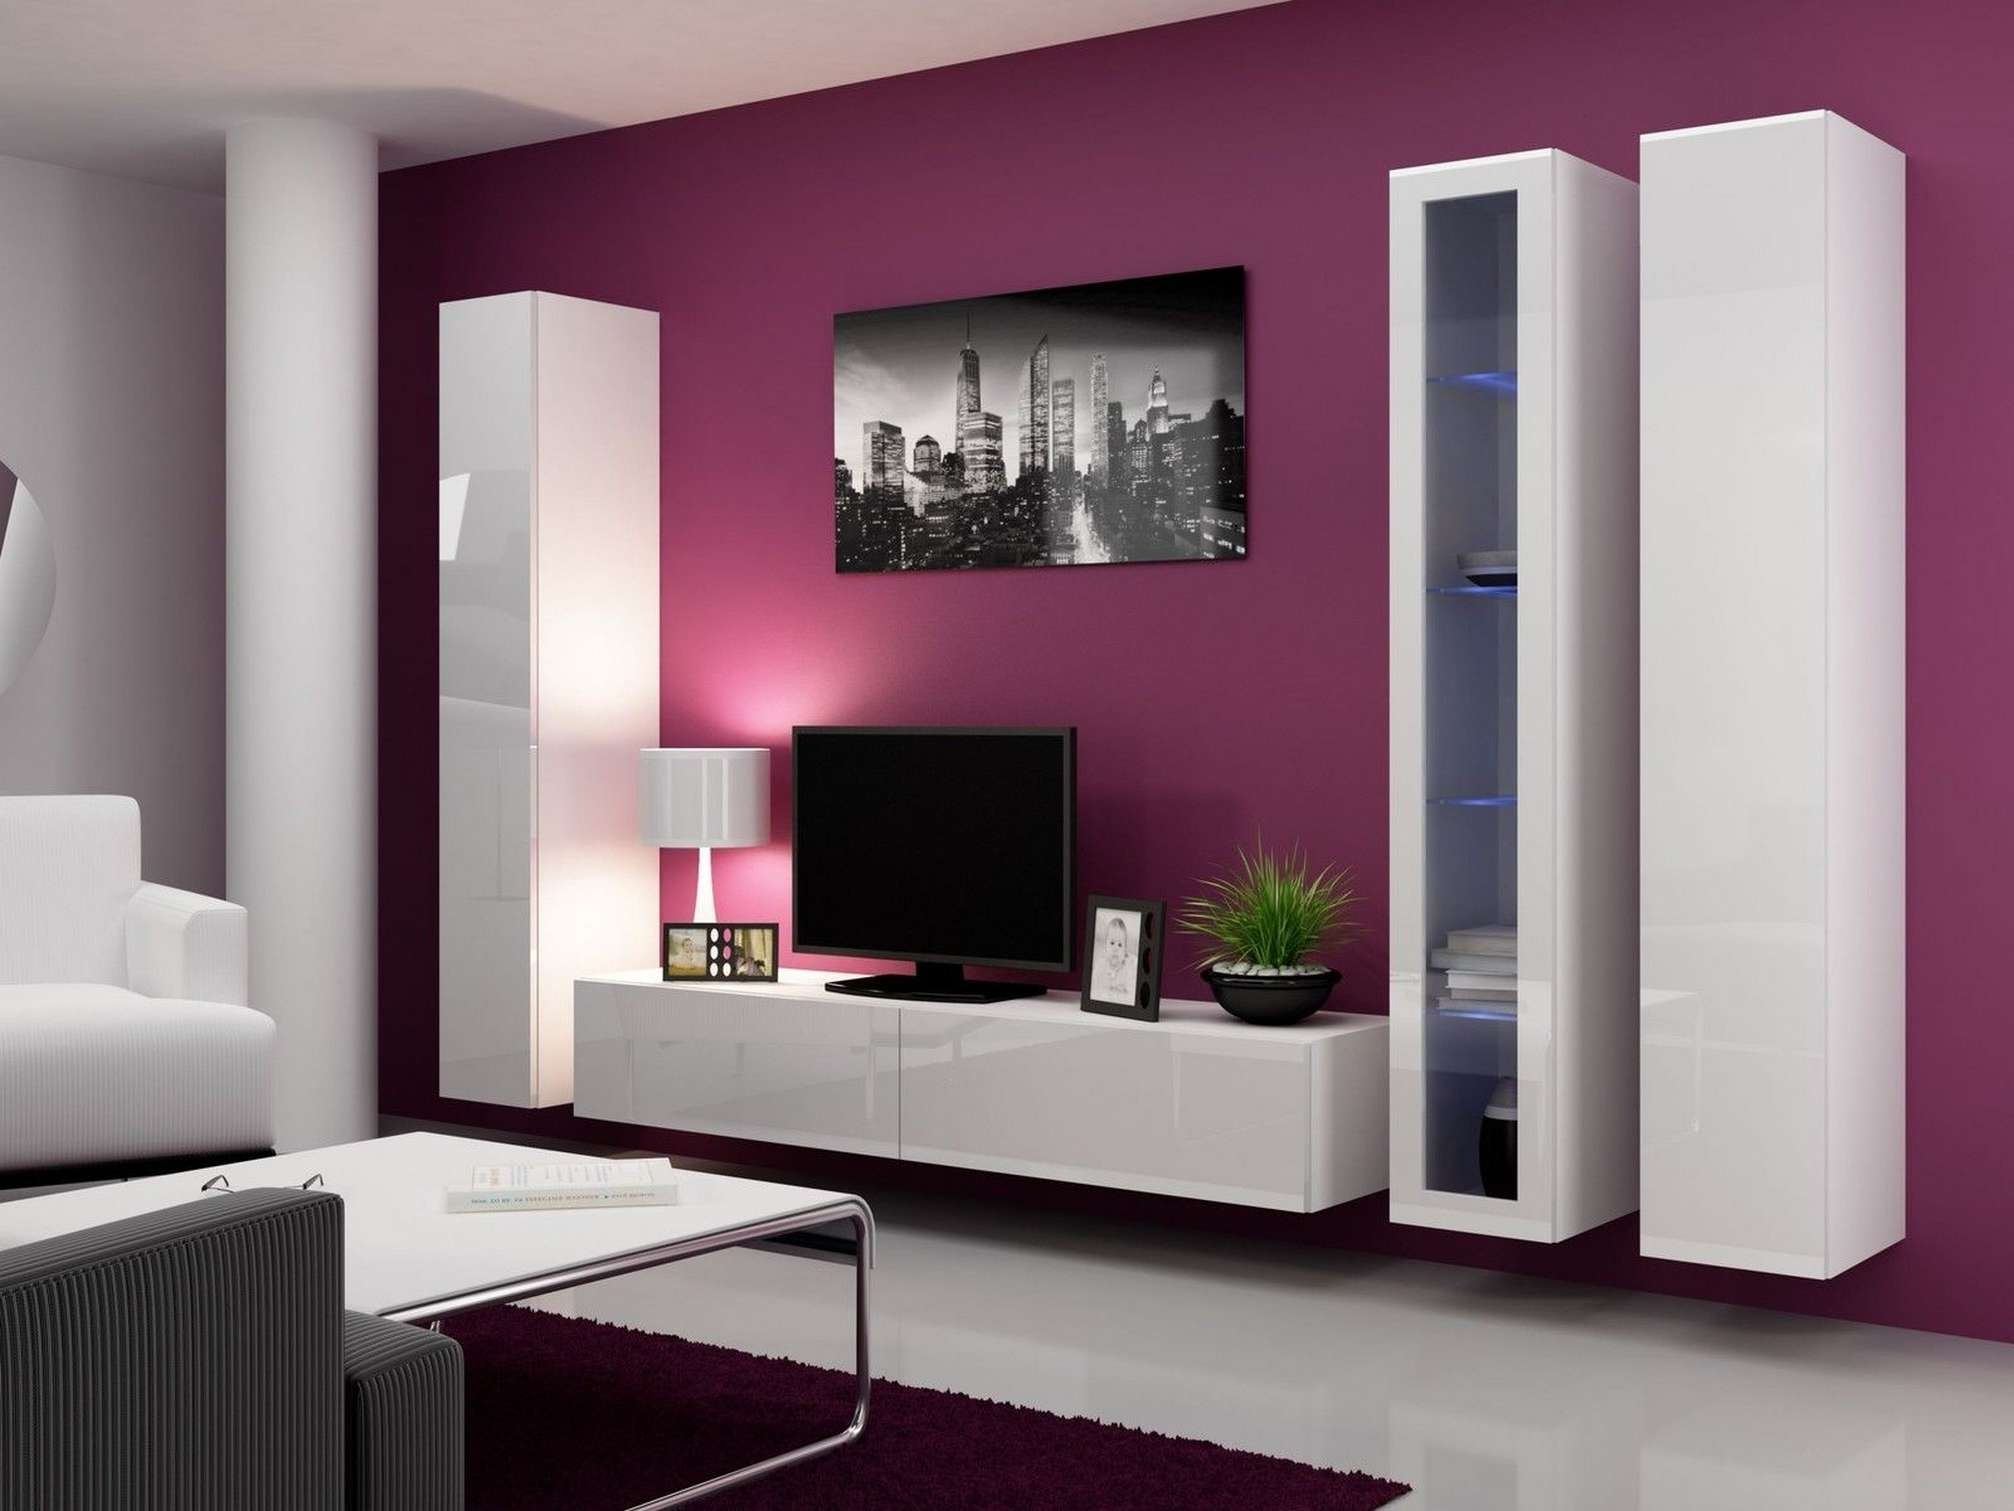 Contemporary White Floating Tv Stands With Media Shelving Attached Inside Full Wall Tv Cabinets (View 20 of 20)